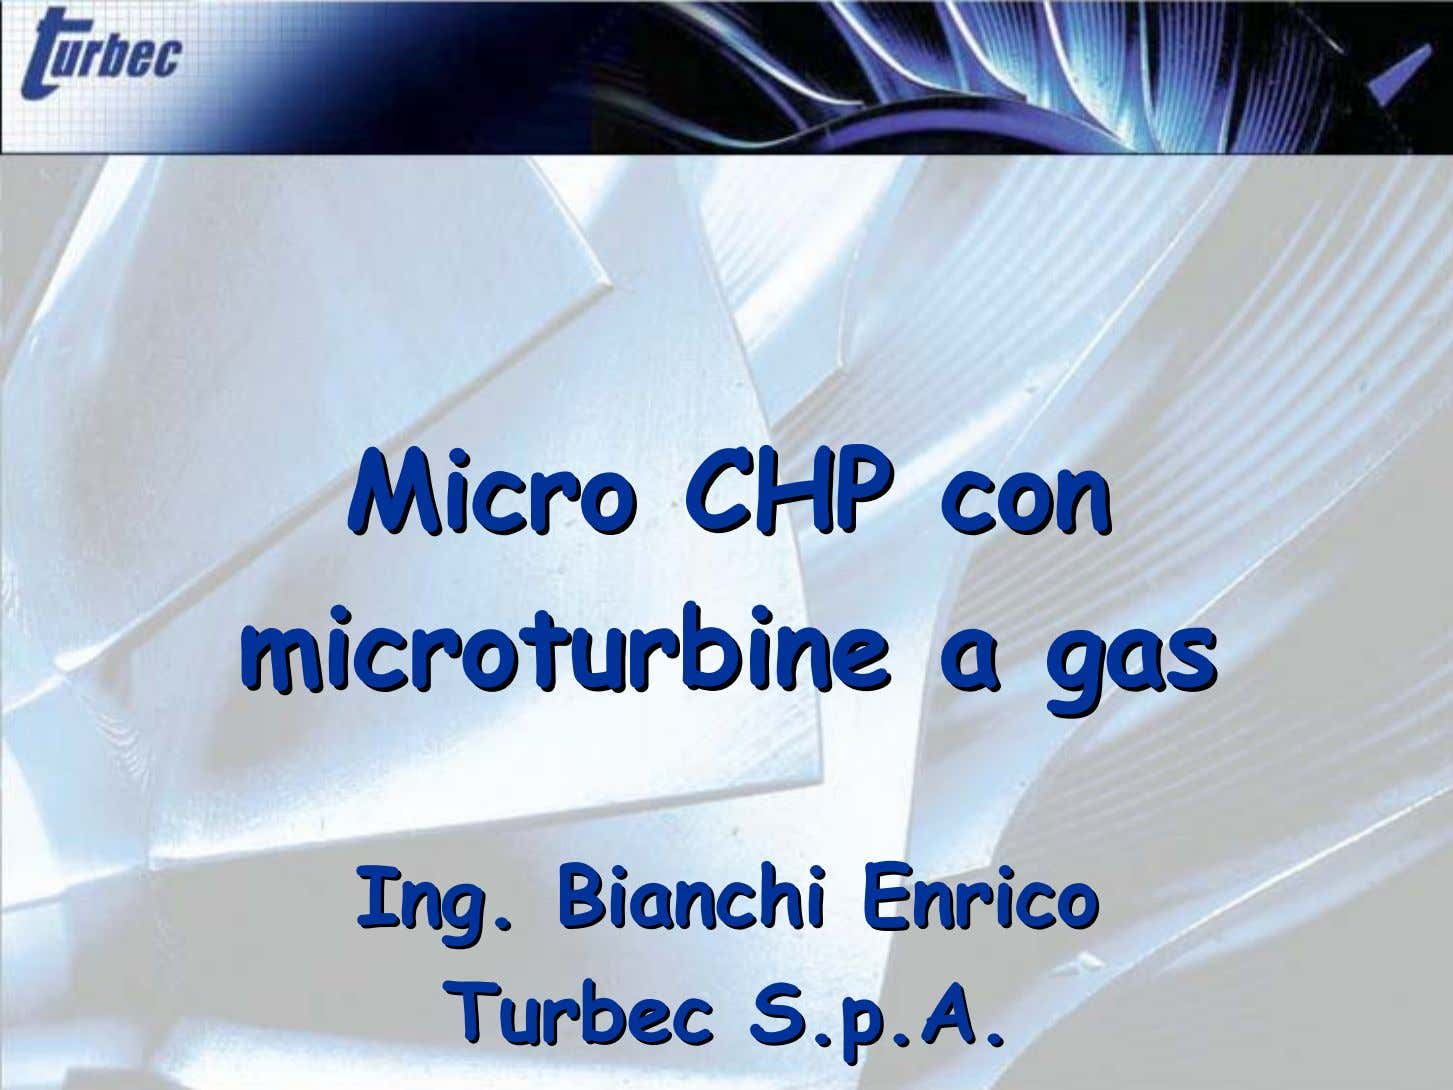 MicroMicro CHPCHP concon microturbinemicroturbine aa gasgas IngIng BianchiBianchi EnricoEnrico TurbecTurbec S.p.AS.p.A